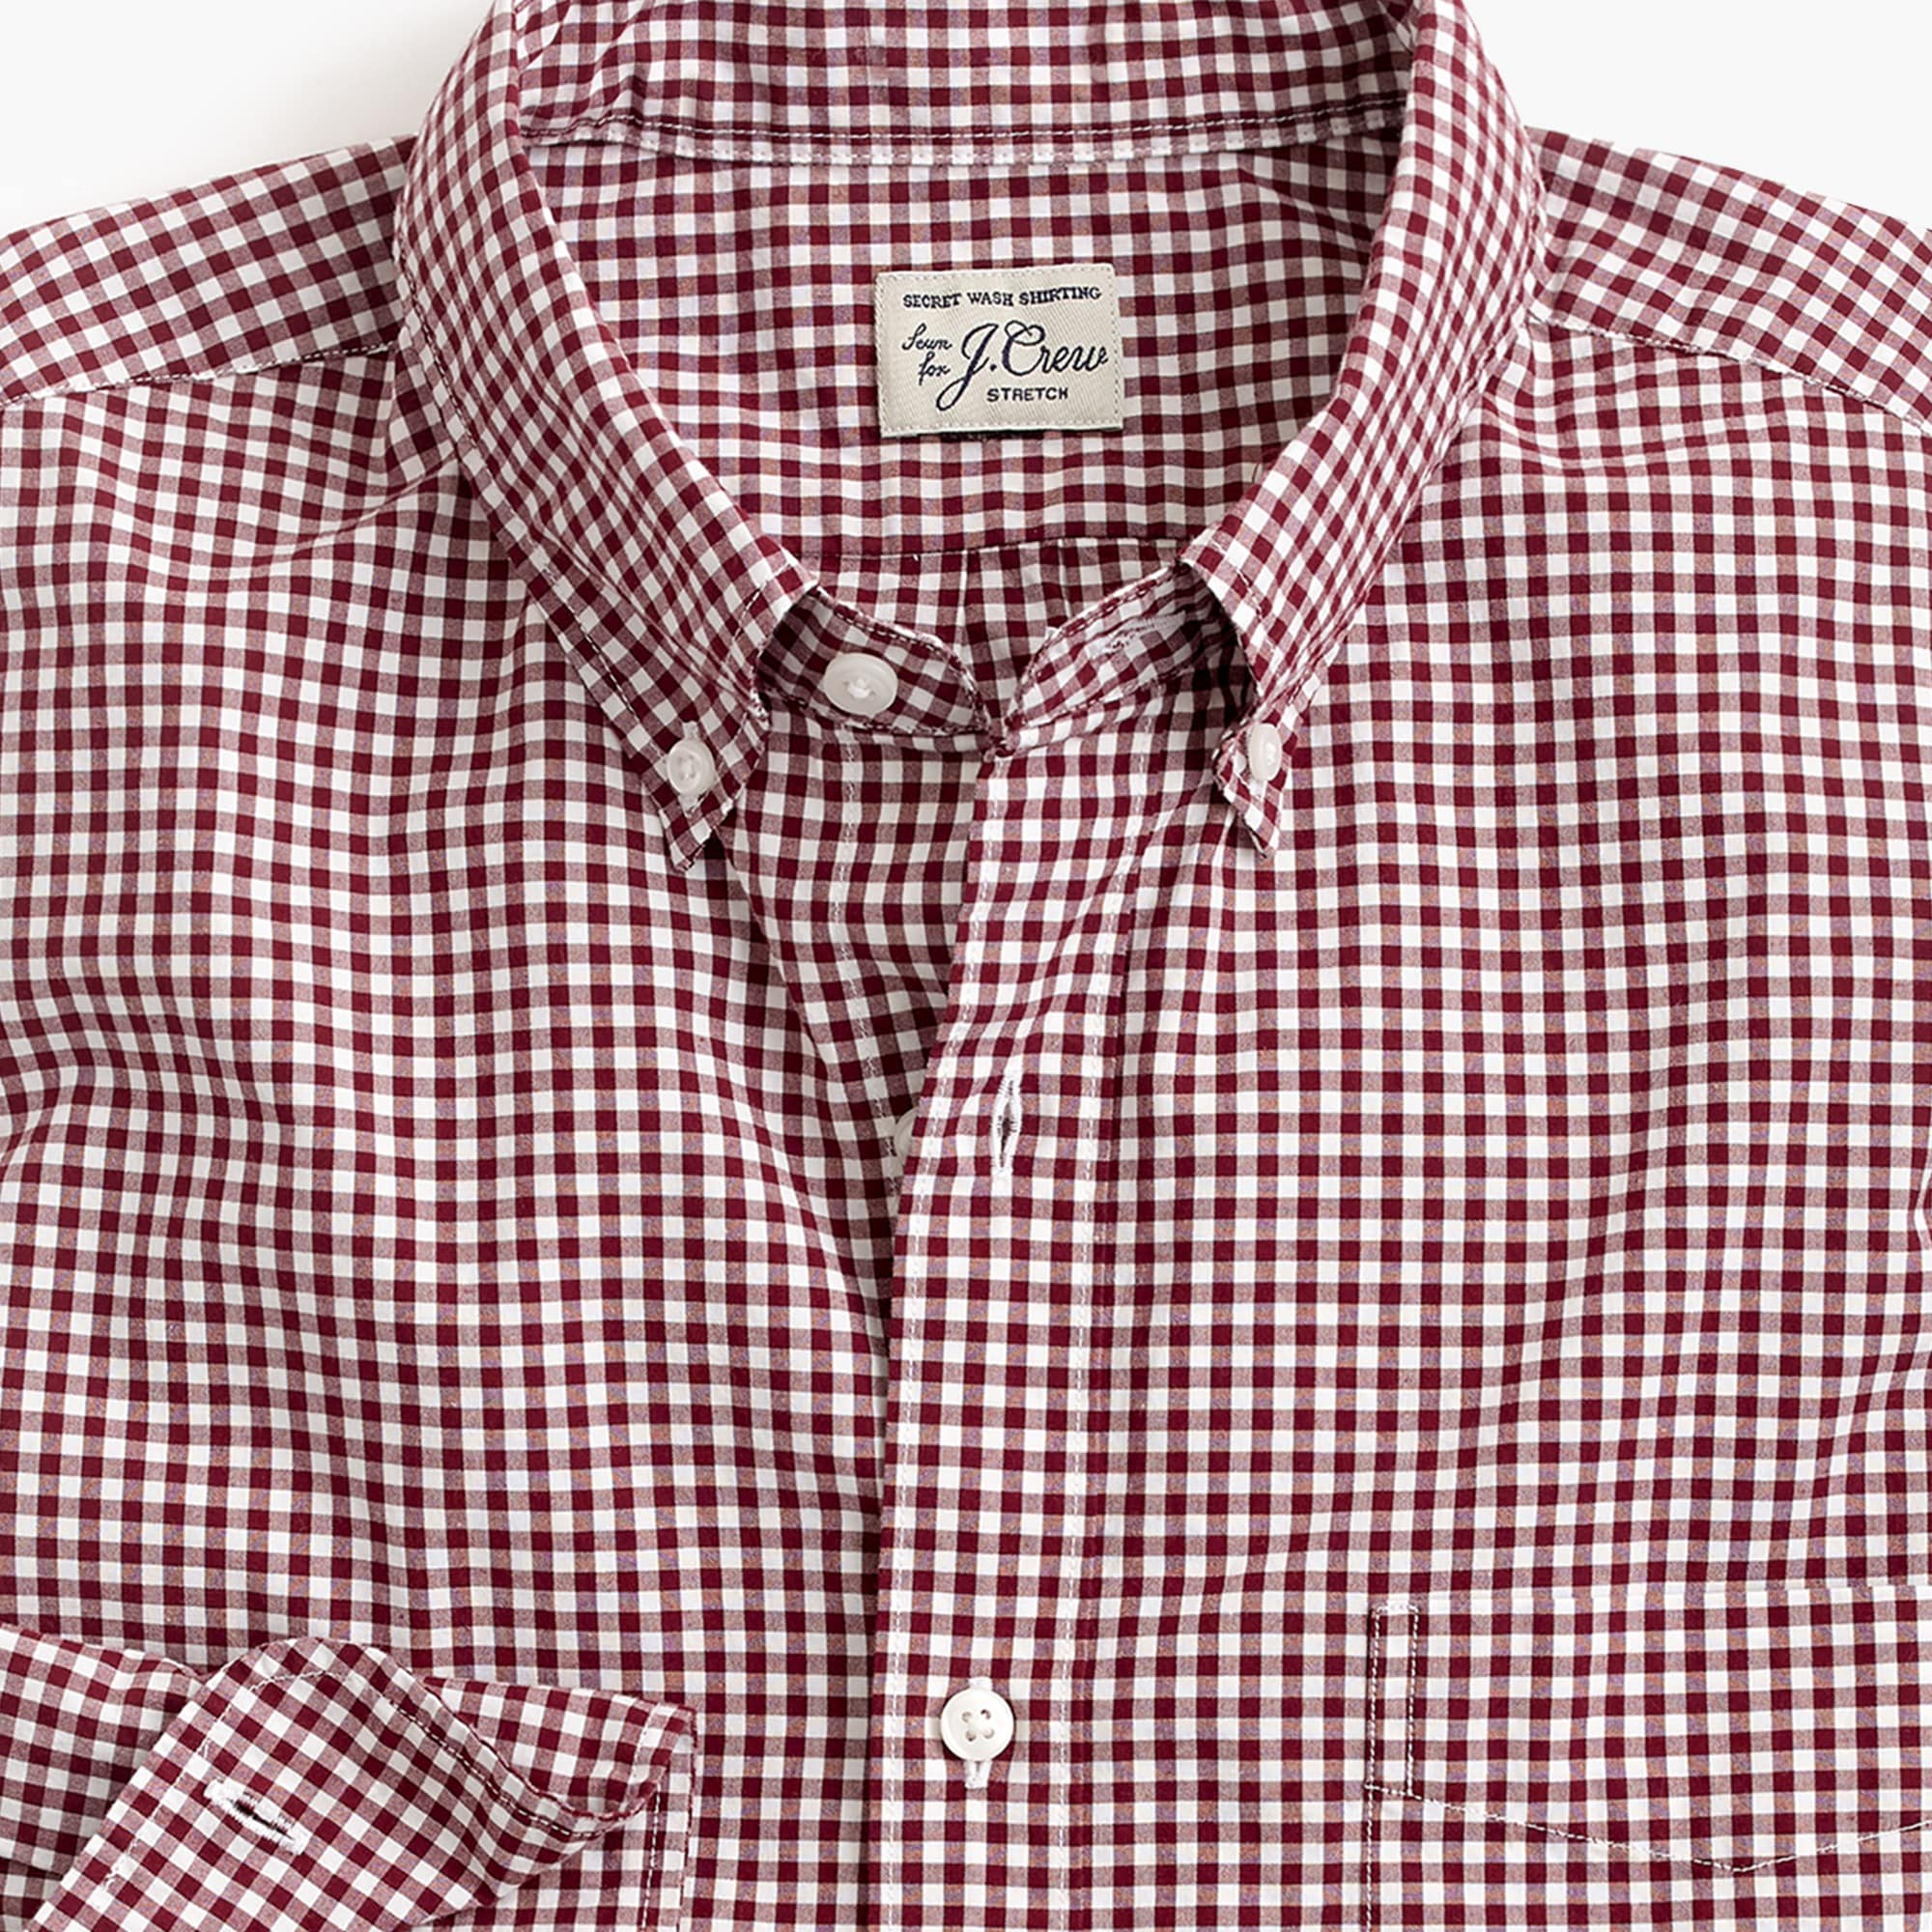 Image 4 for Tall stretch Secret Wash shirt in gingham poplin